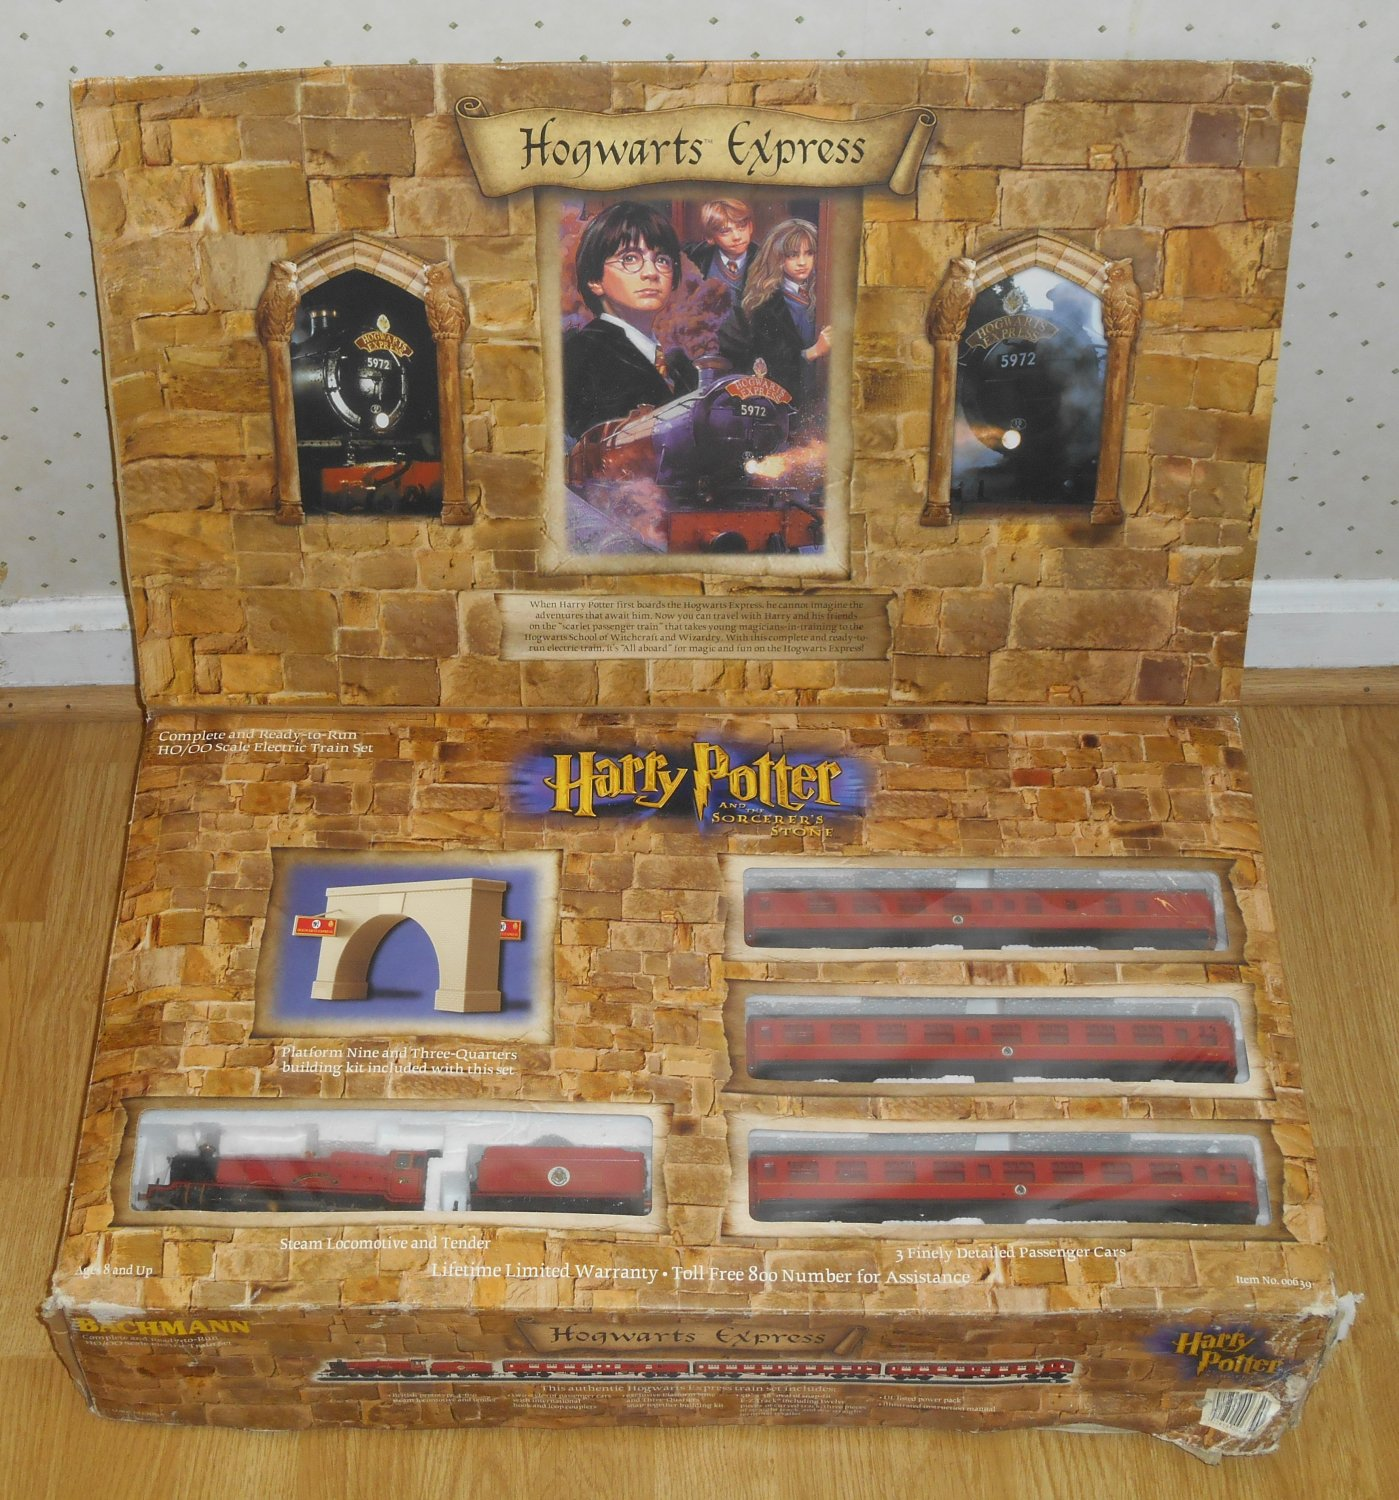 Hogwarts Express Bachmann 00639 HO/OO Scale Electric Train Harry Potter and the Sorcerer's Stone